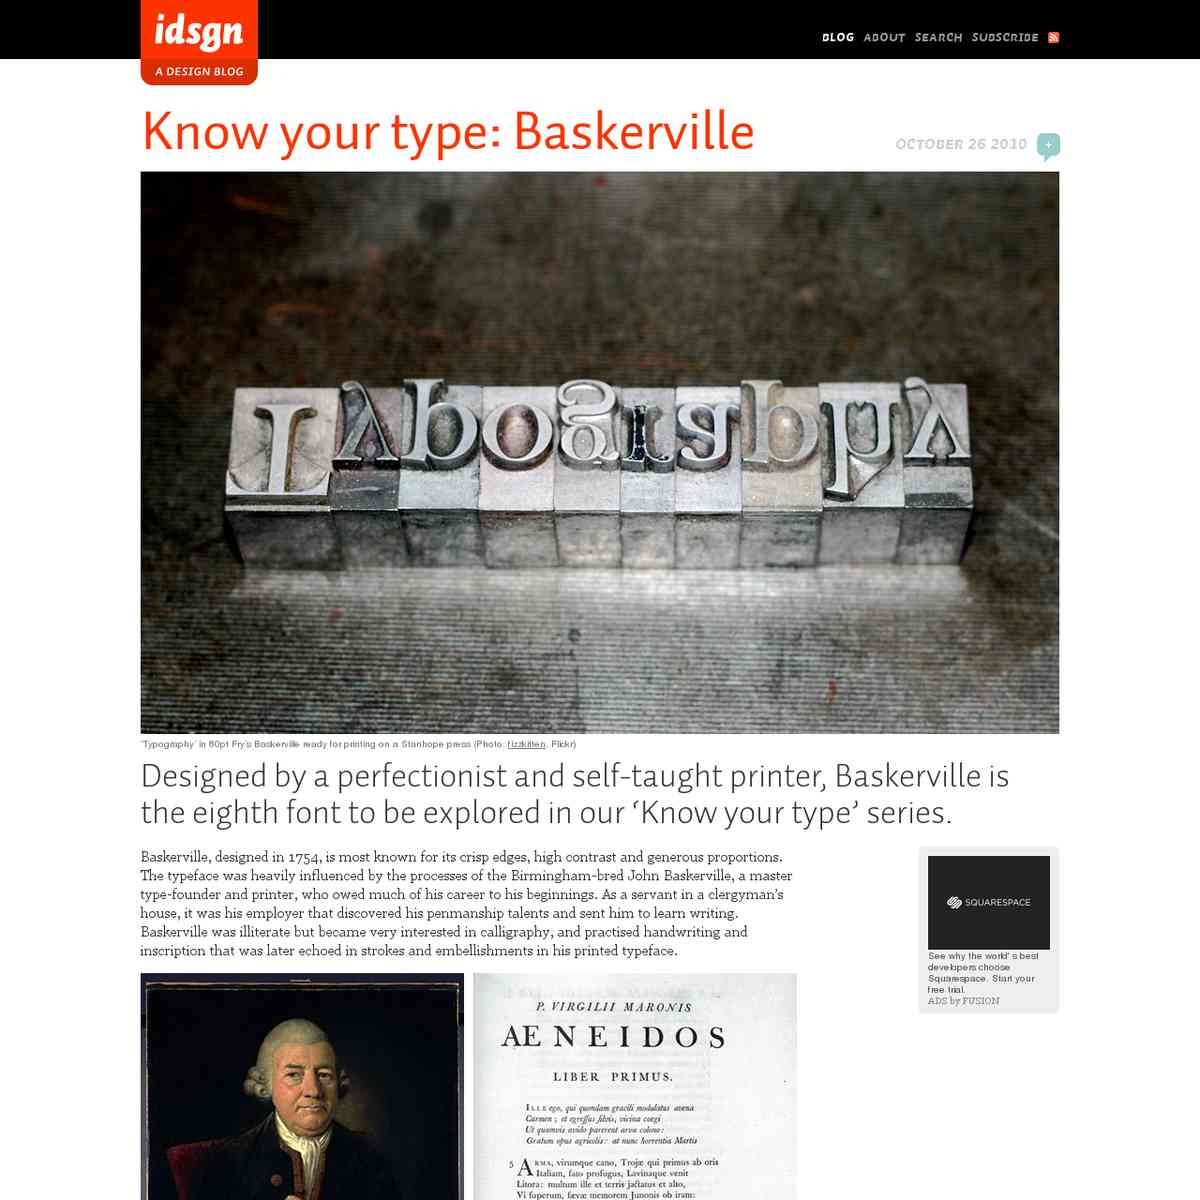 Know your type: Baskerville